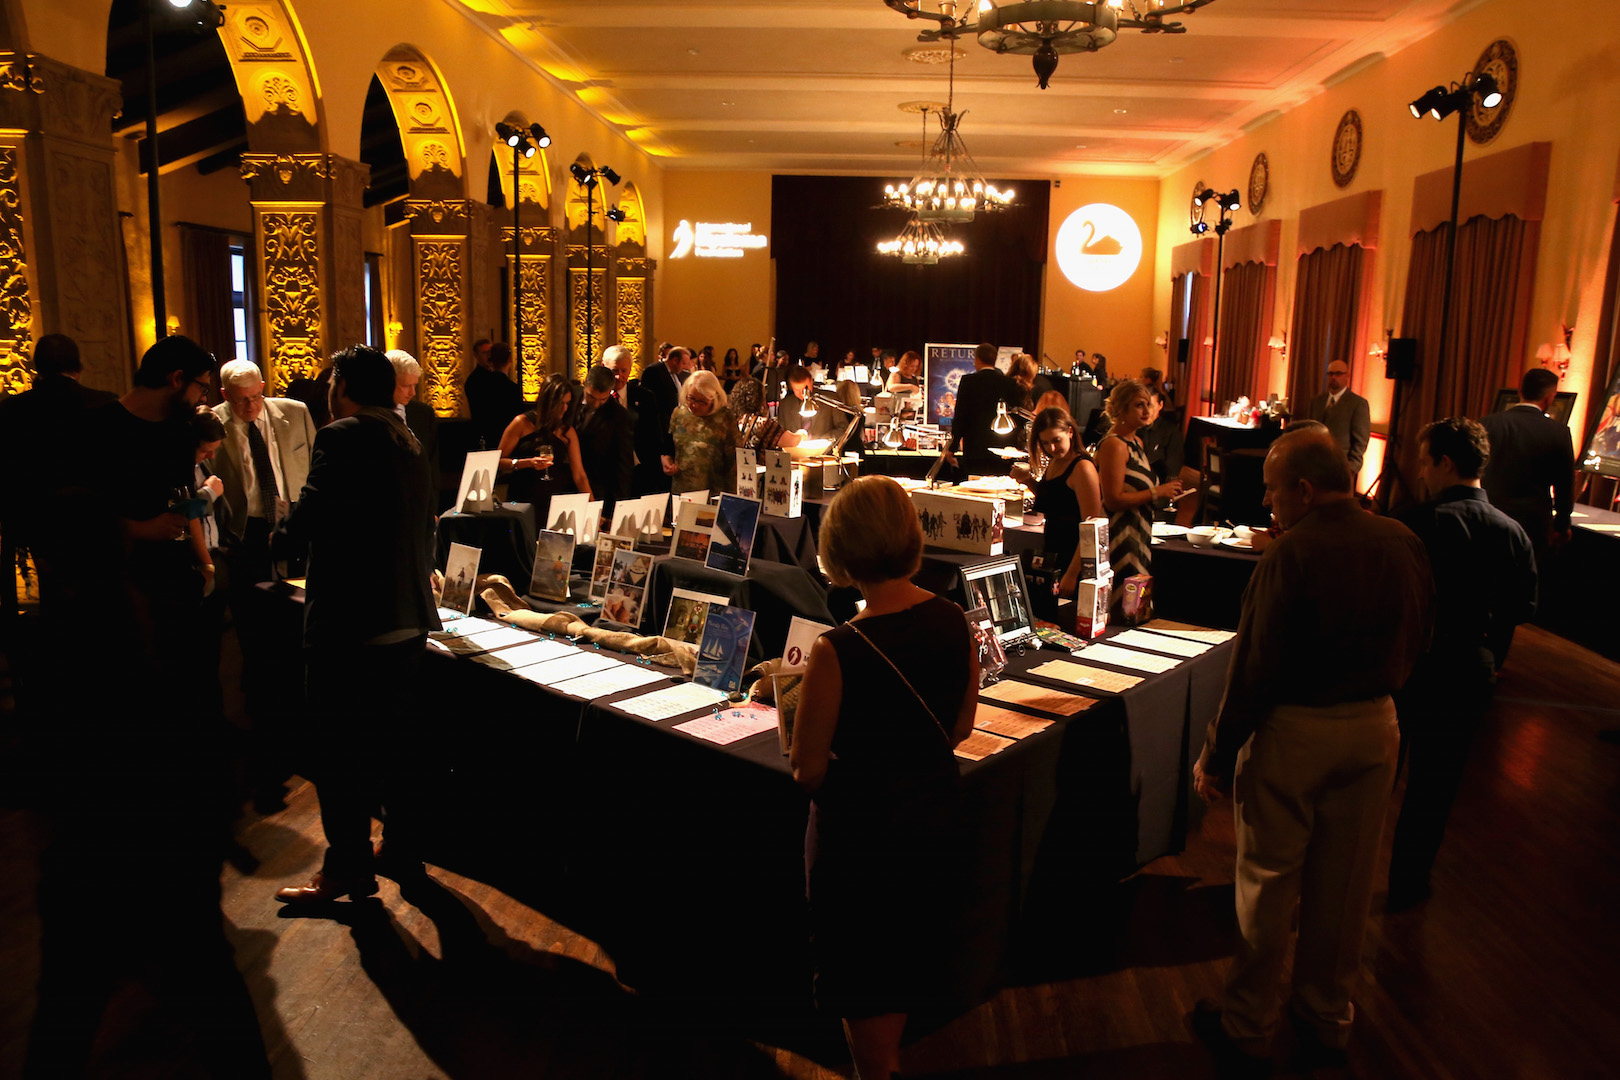 LOS ANGELES, CA - OCTOBER 10:  Guests peruse auction items on display during the 9th Annual Comedy Celebration, presented by the International Myeloma Foundation, at The Wilshire Ebell Theatre on October 10, 2015 in Los Angeles, California.  (Photo by Jesse Grant/Getty Images for for International Myeloma Foundation)